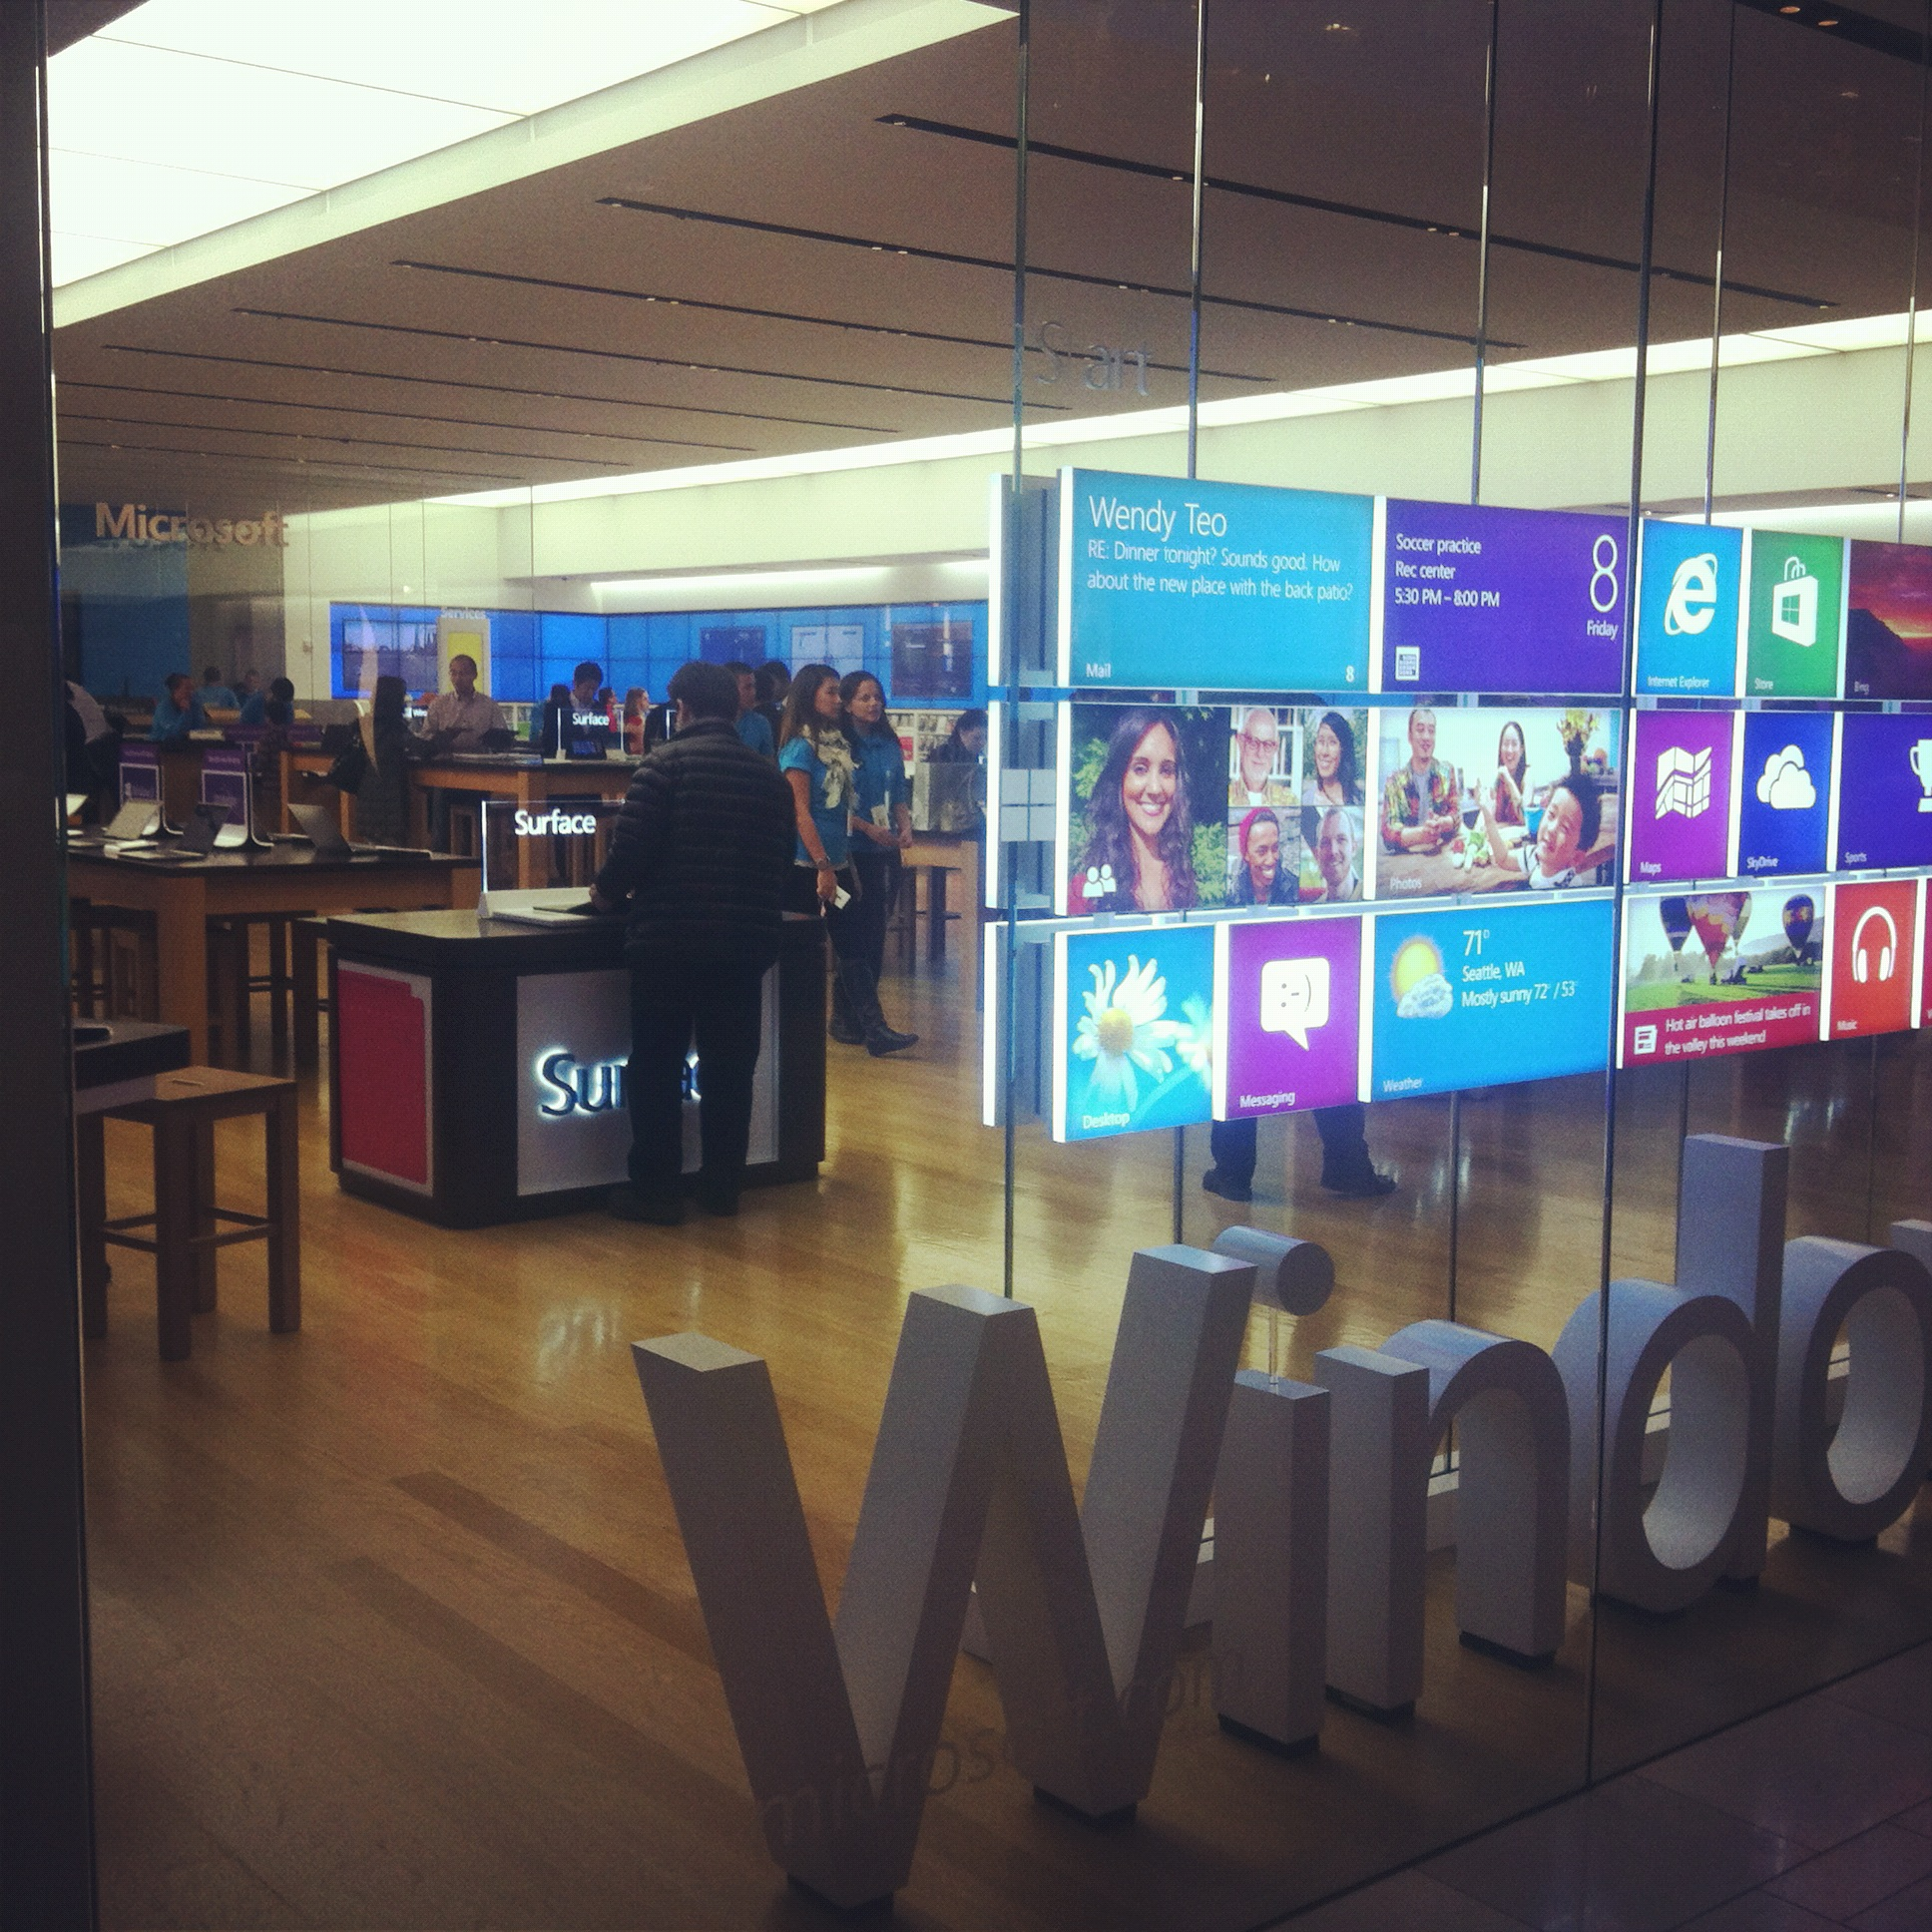 Building 92 microsoft store - Since microsoft opened its retail stores this is the first time i see a microsoft store this full of people wanting to look and play with the surface